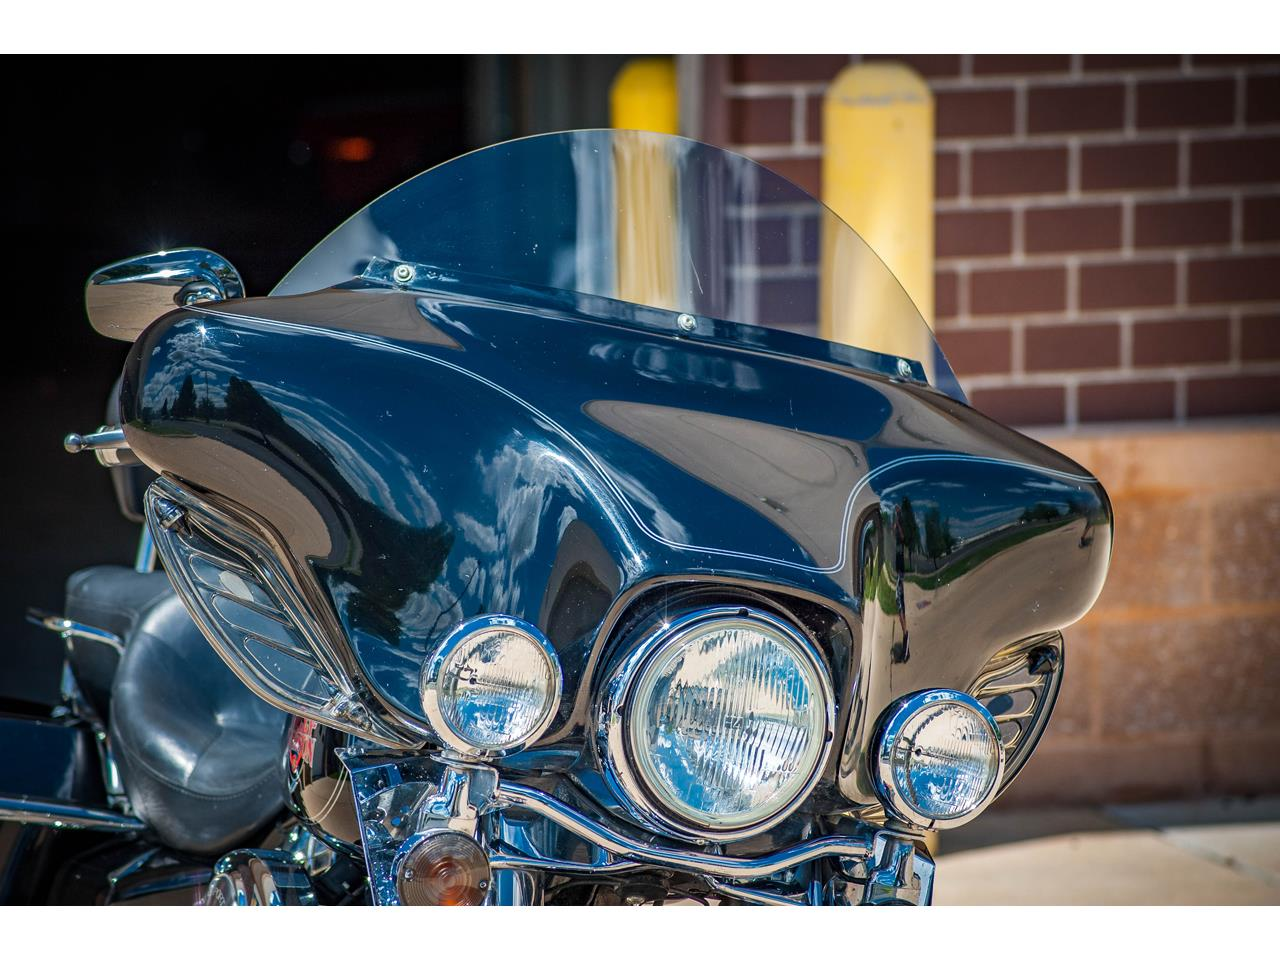 2004 Harley-Davidson Motorcycle for sale in O'Fallon, IL – photo 84